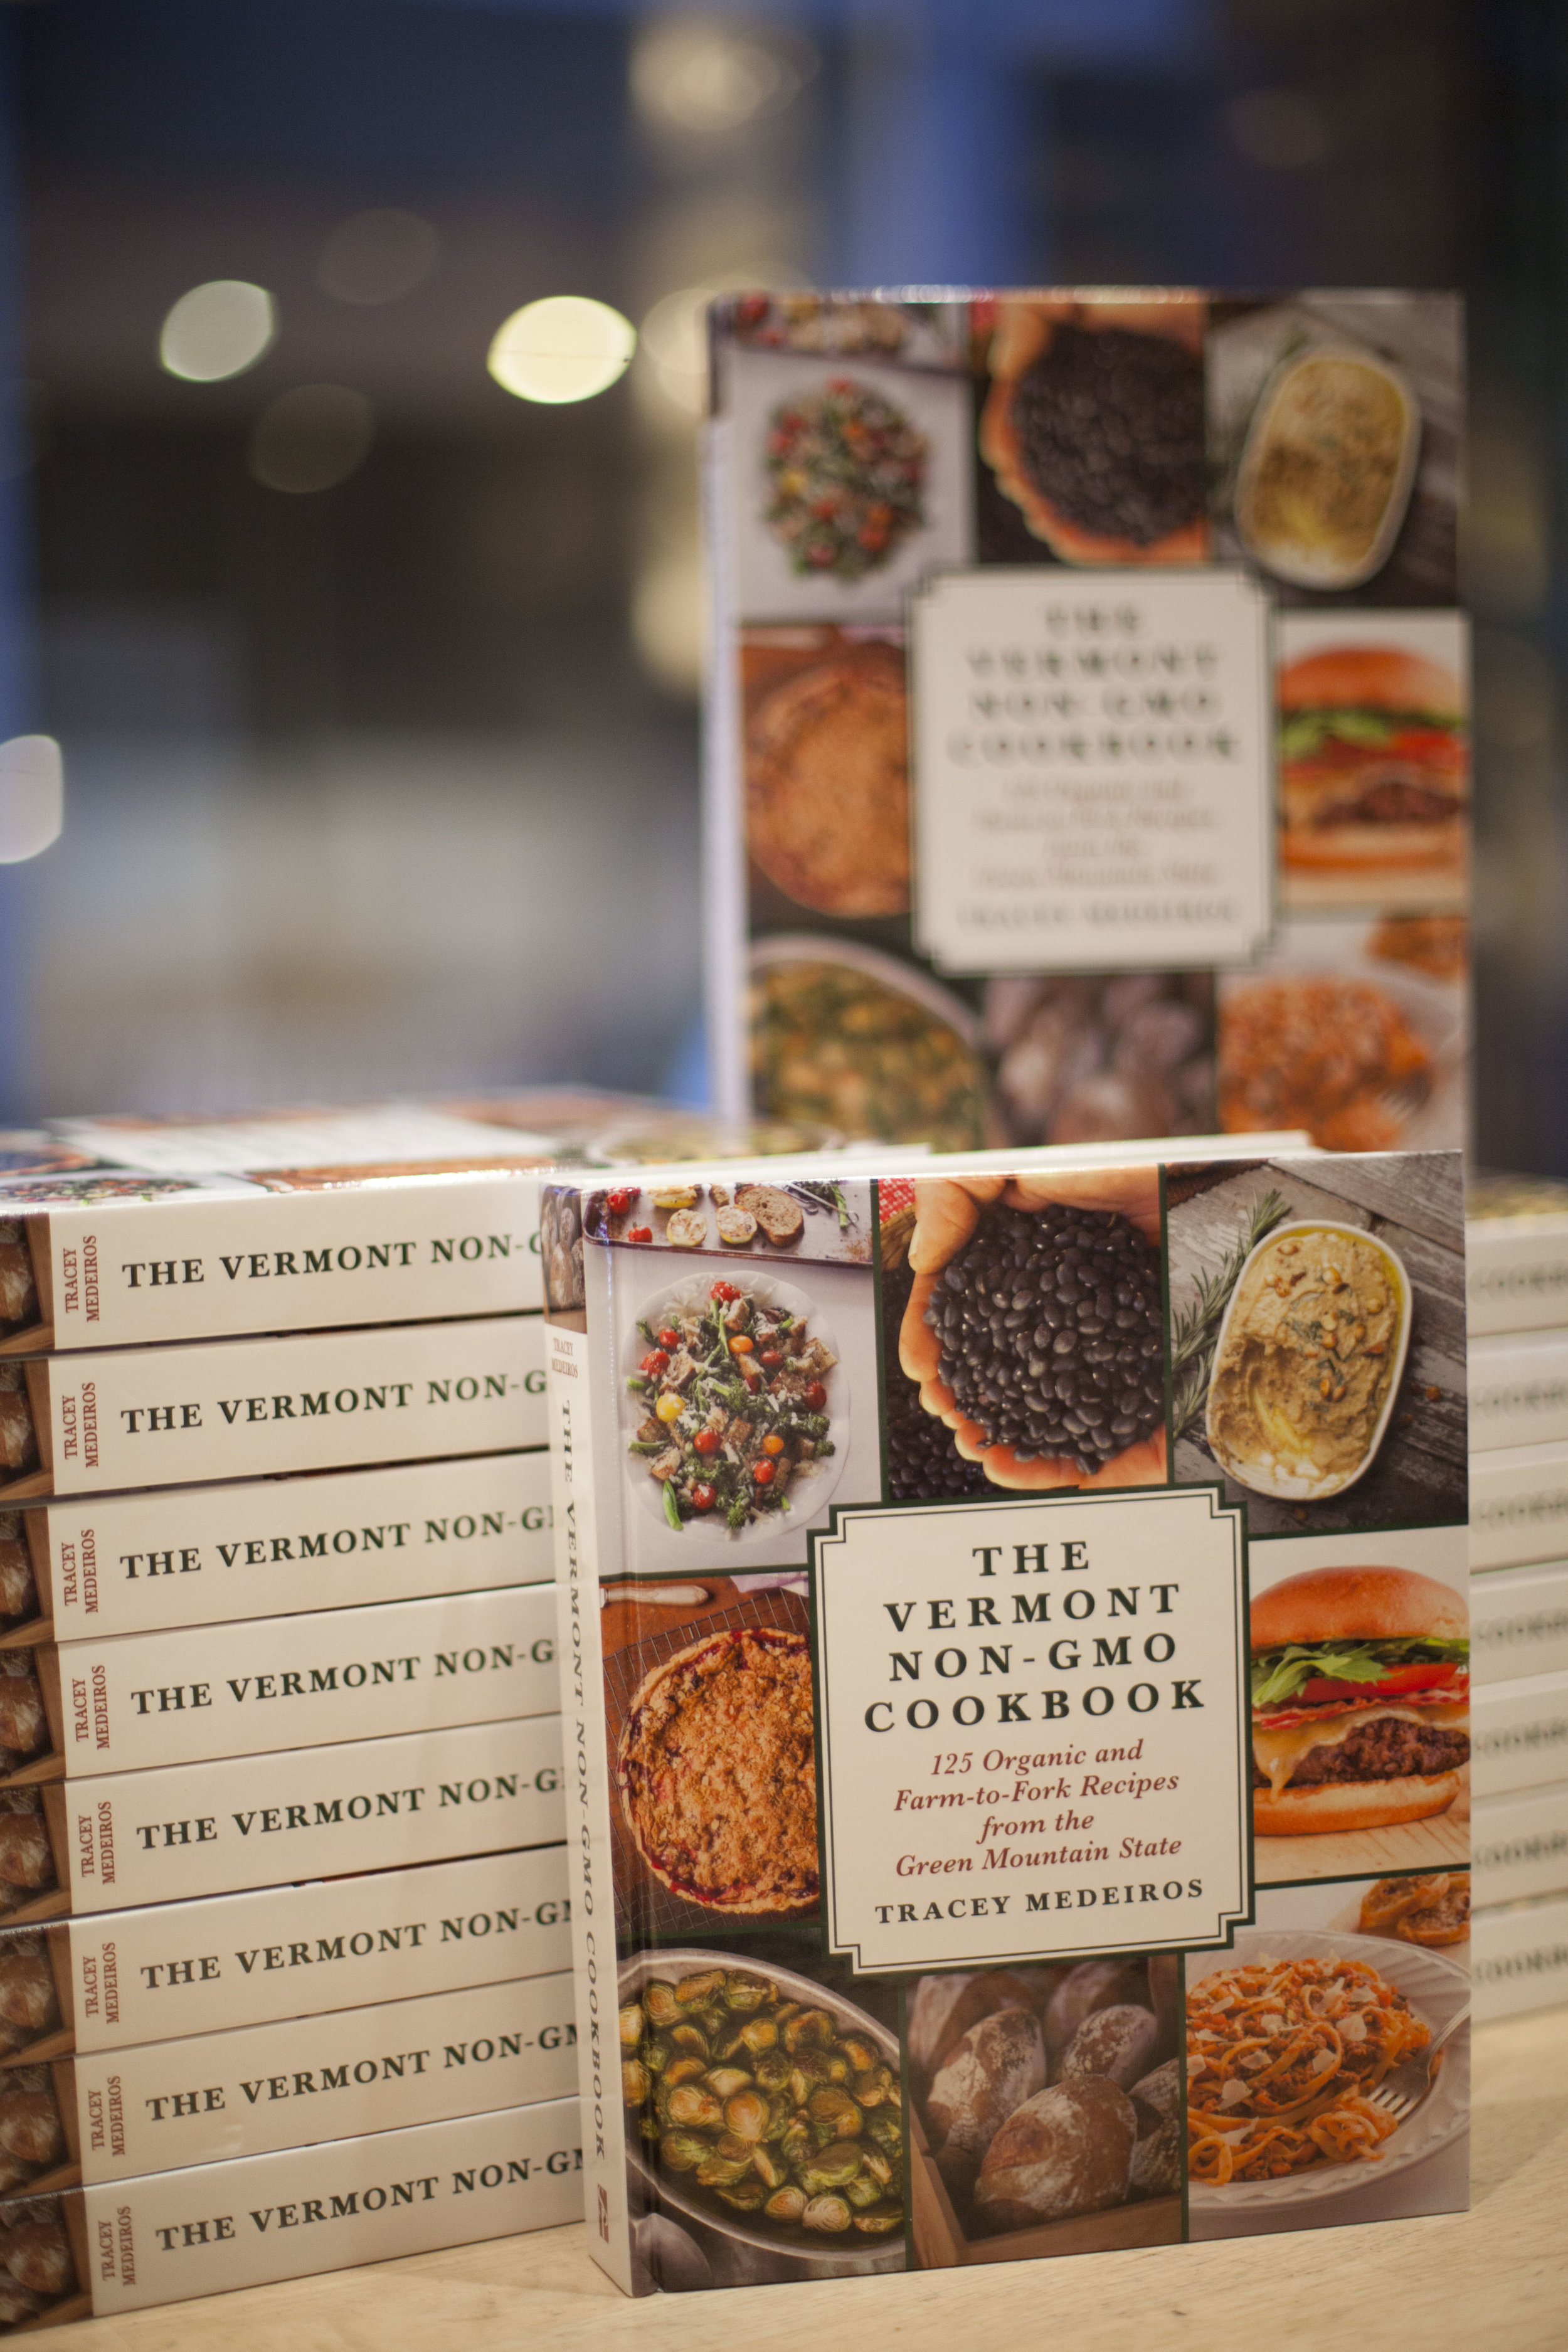 COOKbook Author Series:   The Vermont Non-GMO Cookbook   with Tracey Medeiros on Saturday, November 17, 2018.